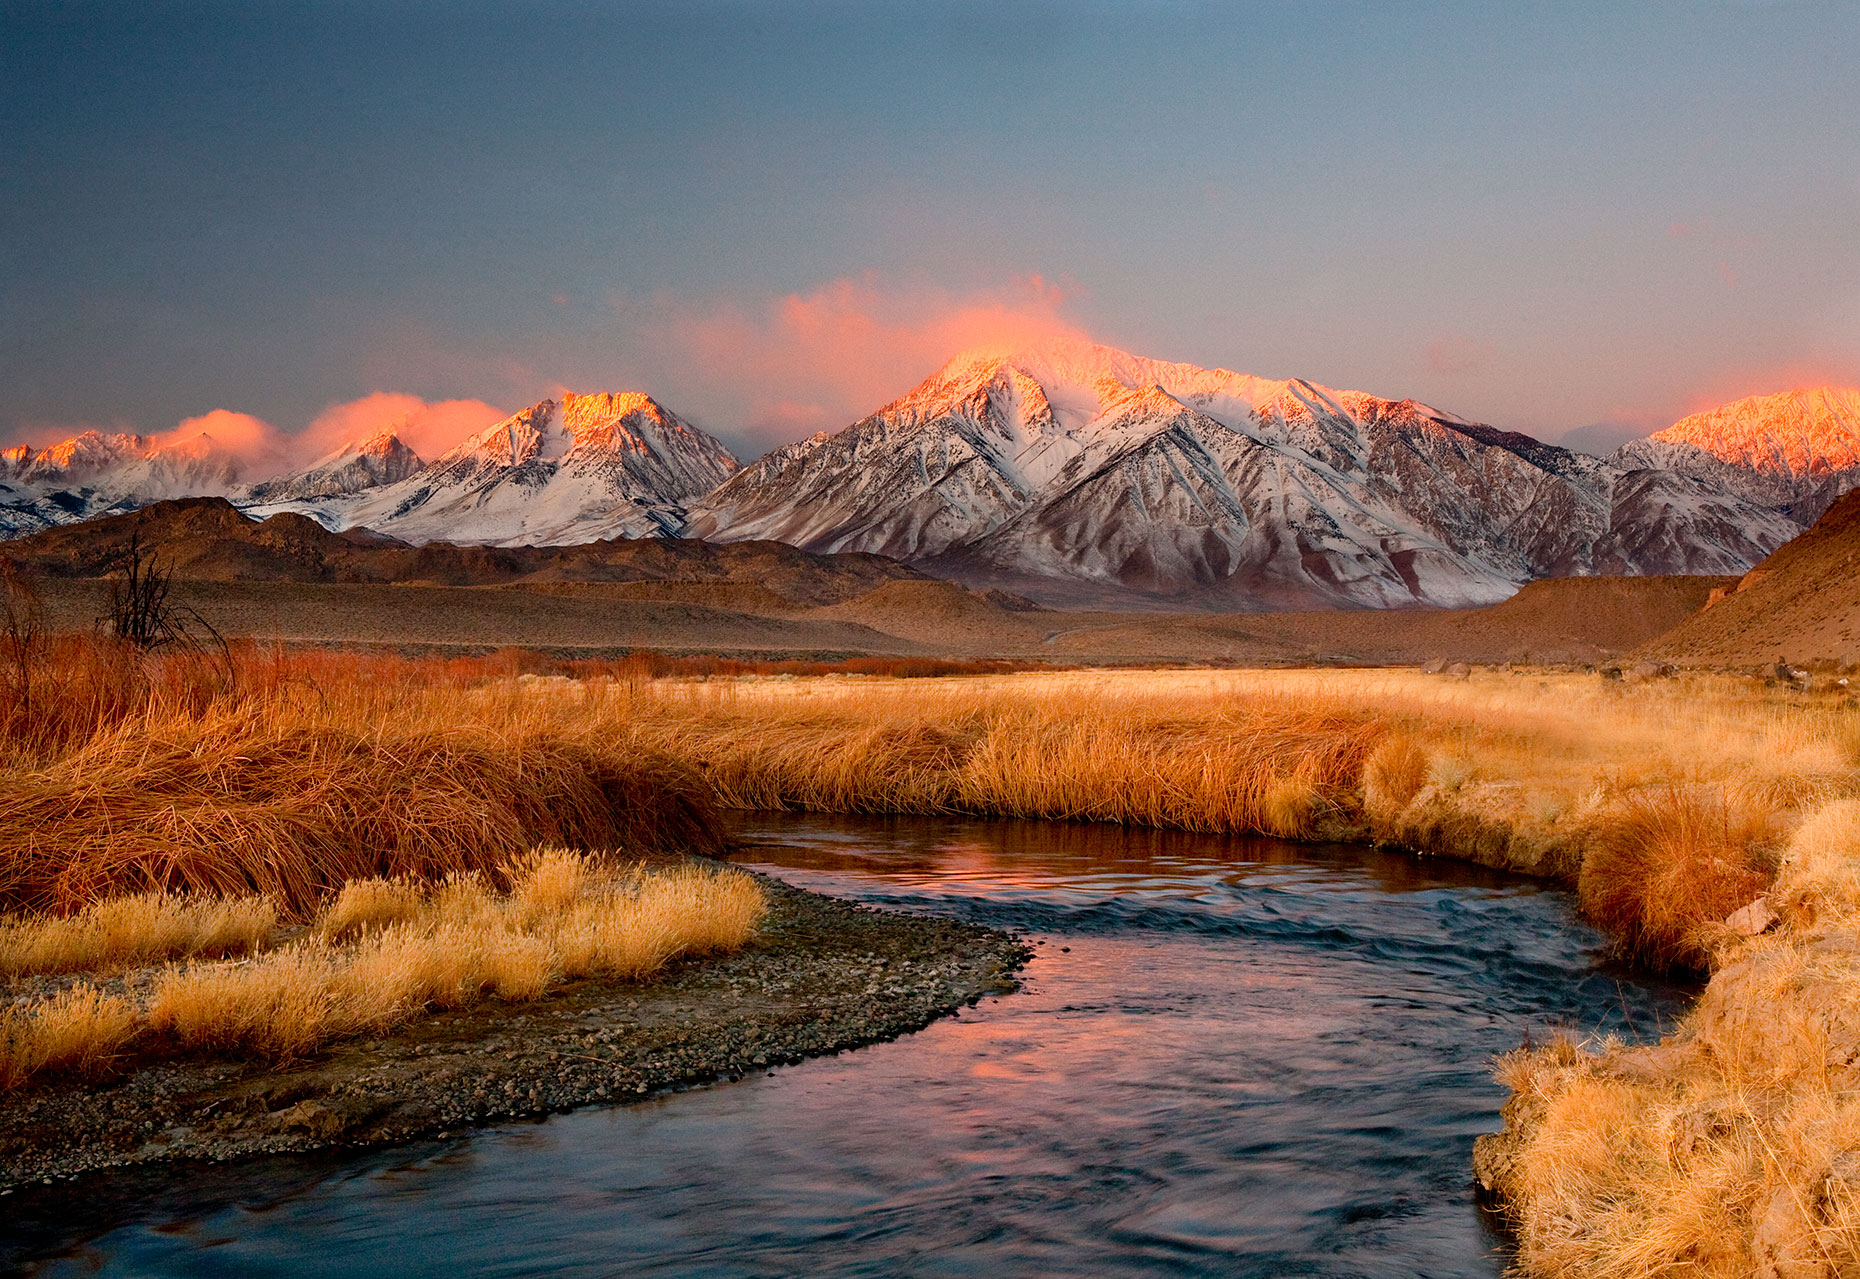 Owens-River-Dawn